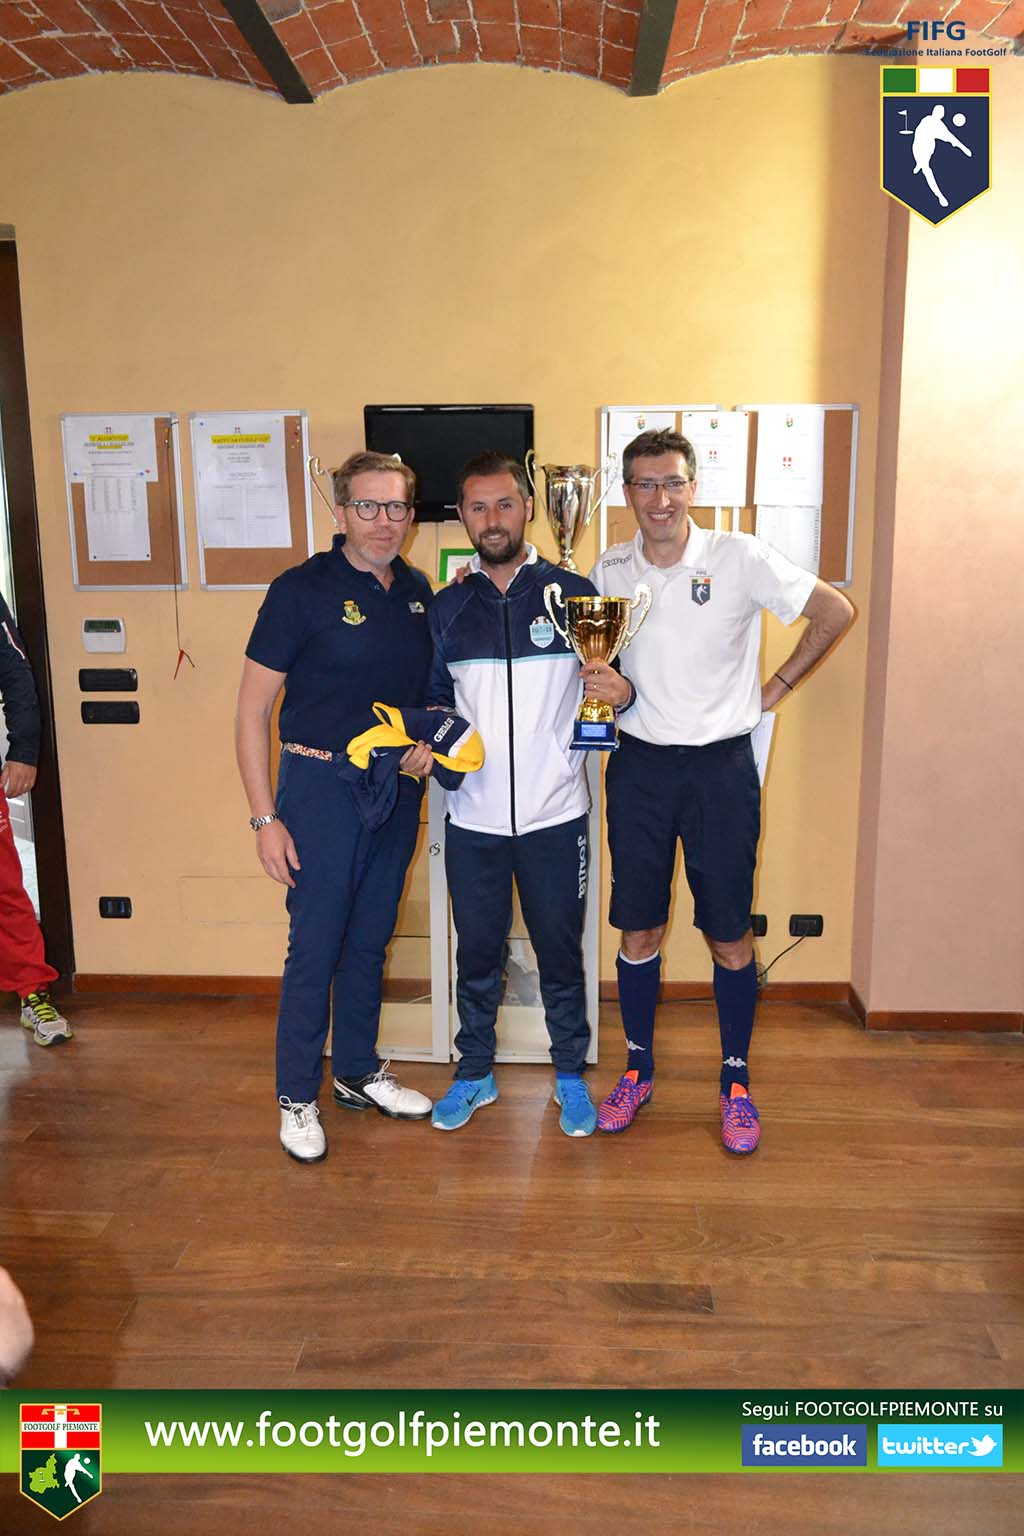 FOTO 9 Regions' Cup Footgolf Piemonte 2016 Golf Città di Asti (At) 30apr16-136